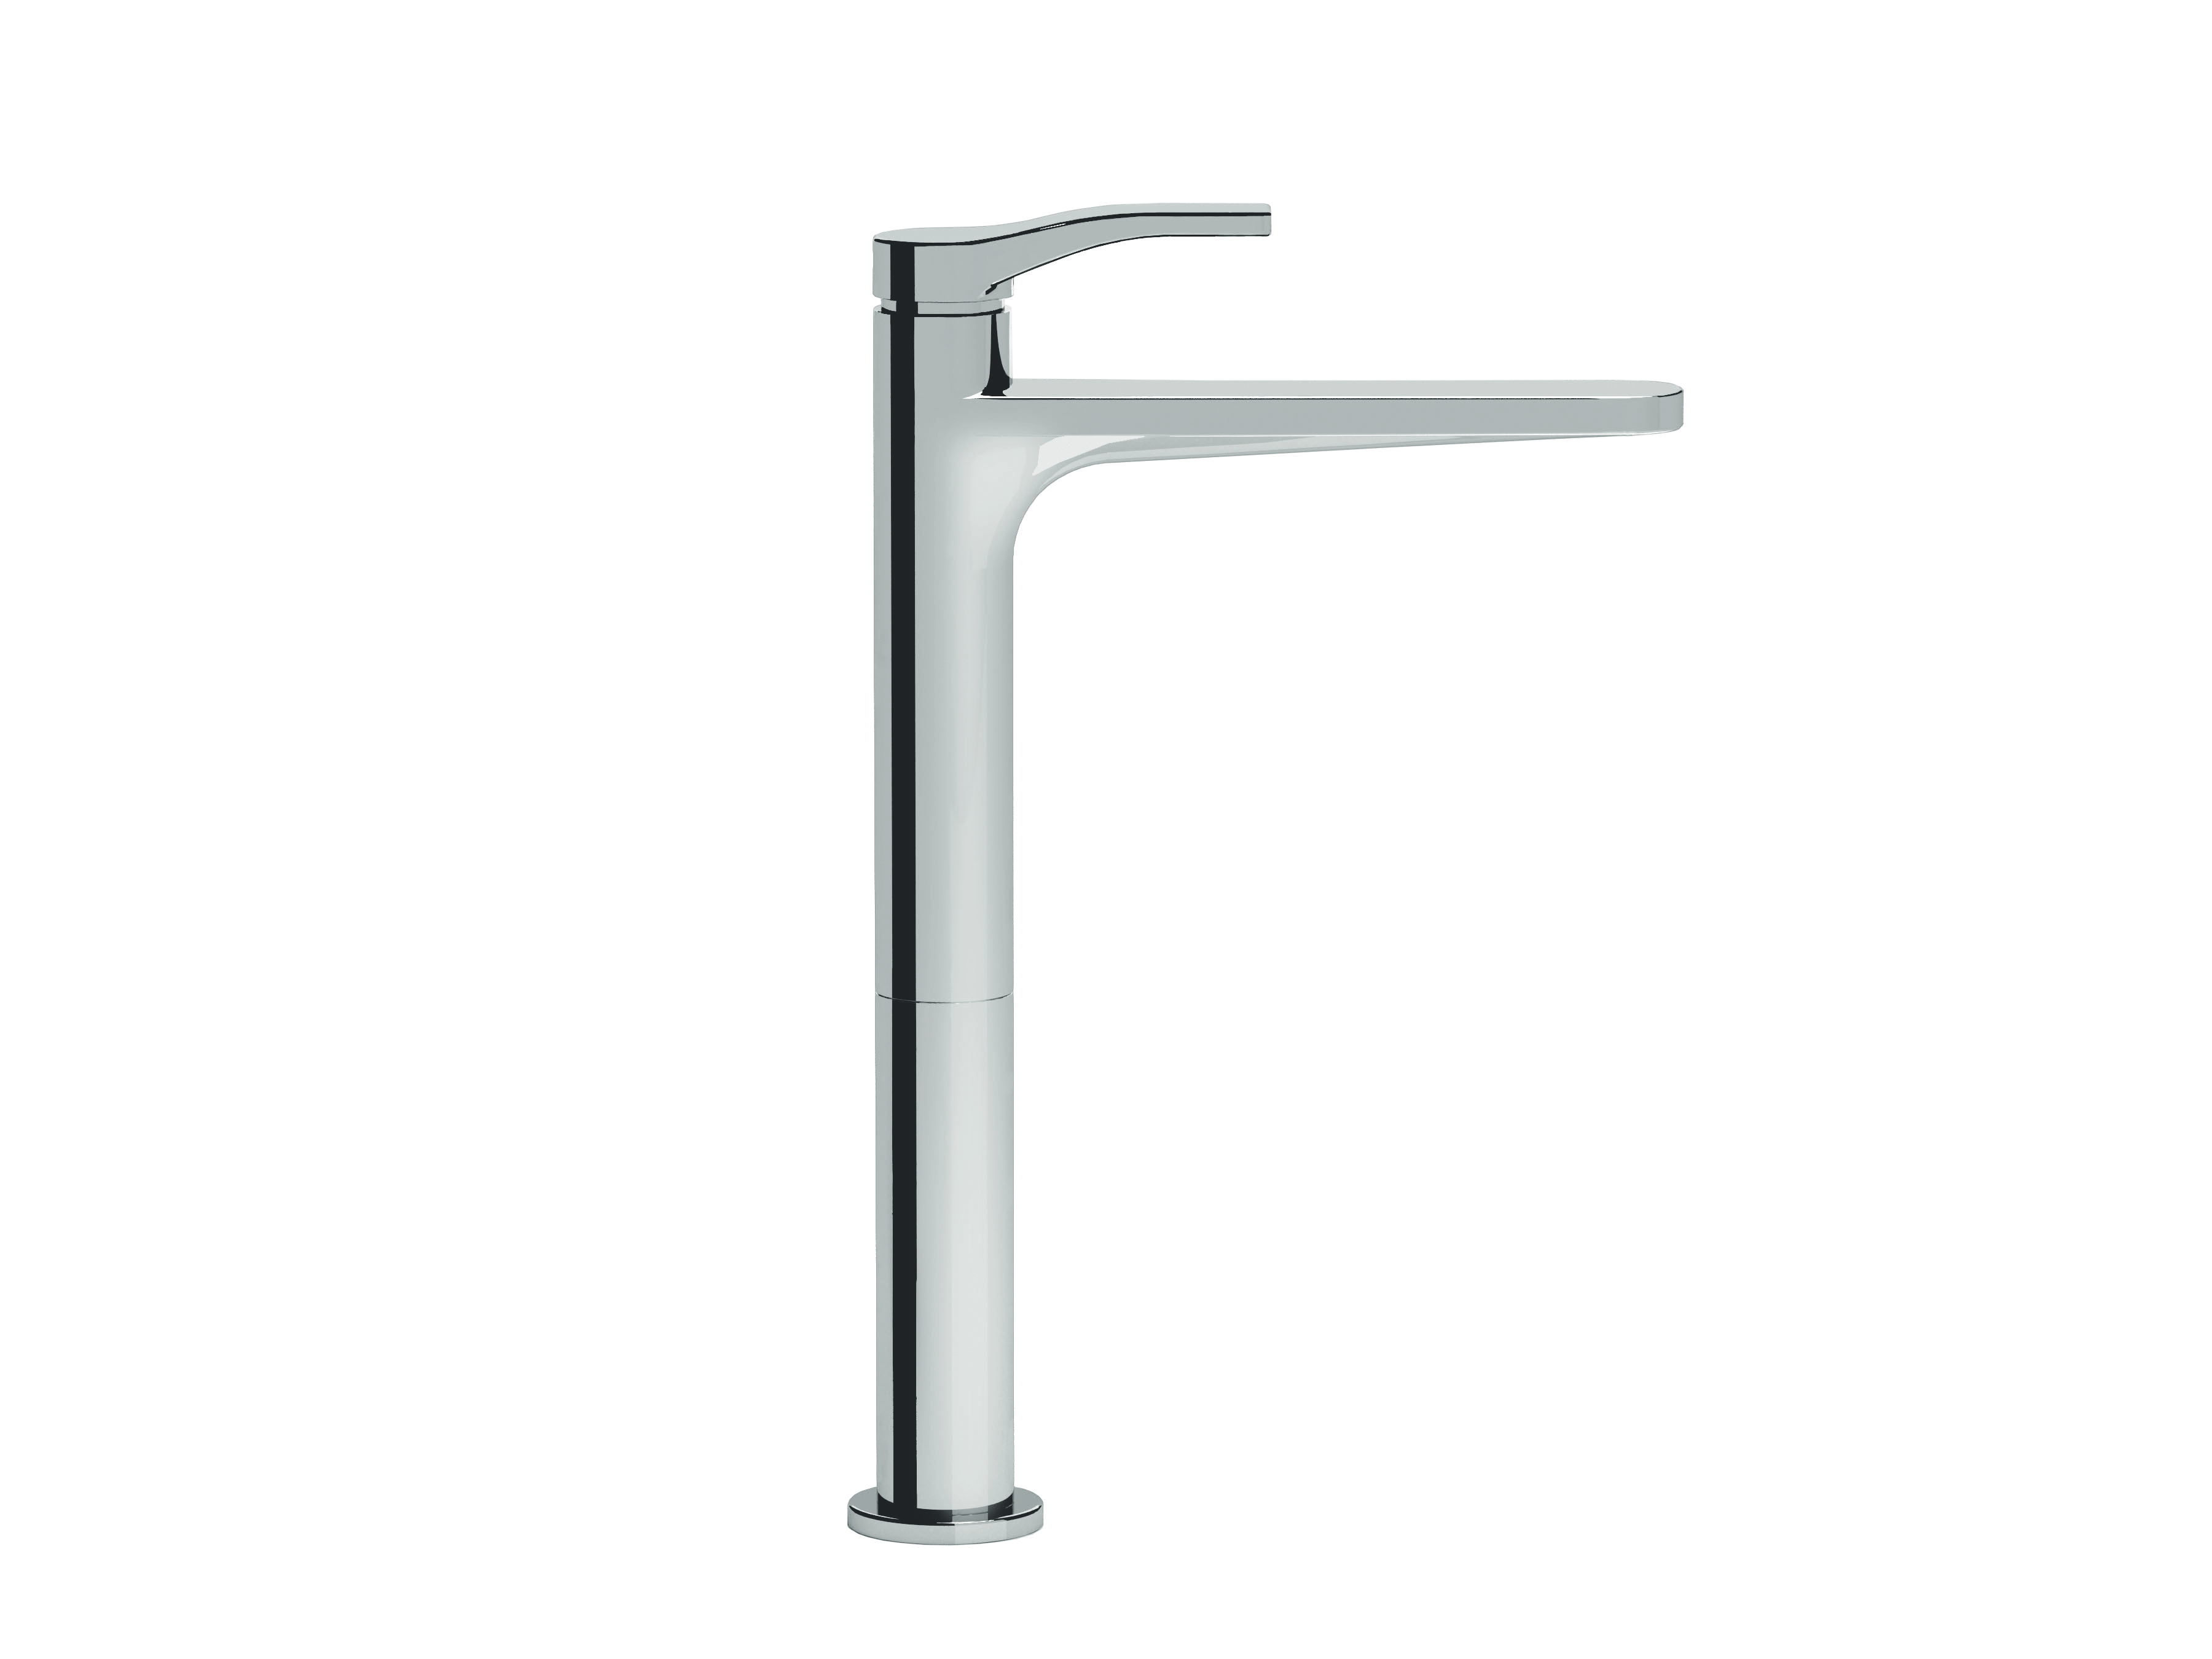 art b006wf lissoni tall basin mixer